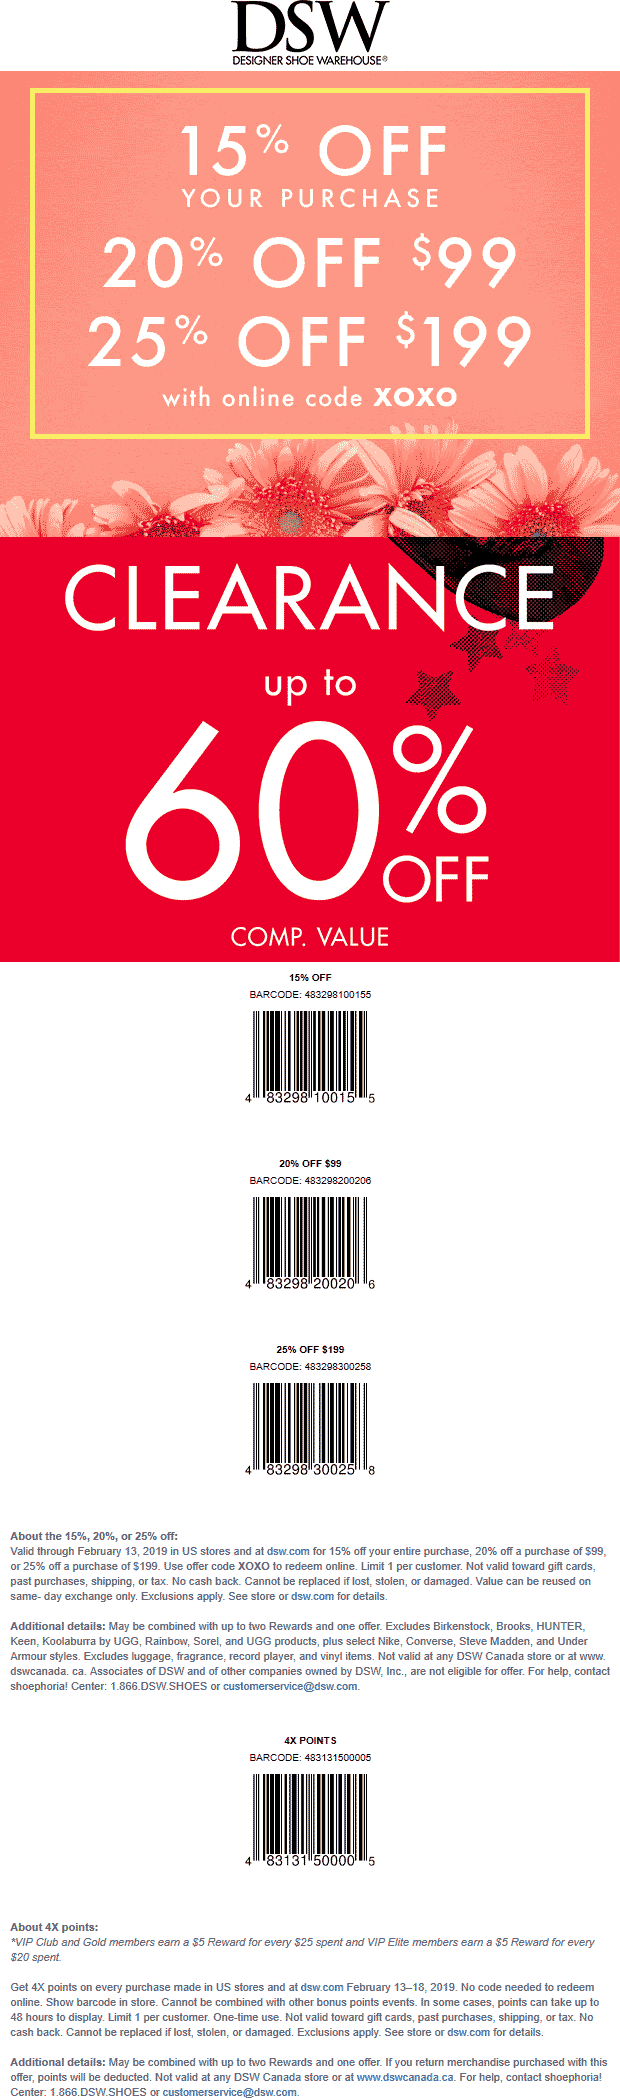 DSW coupons & promo code for [July 2020]